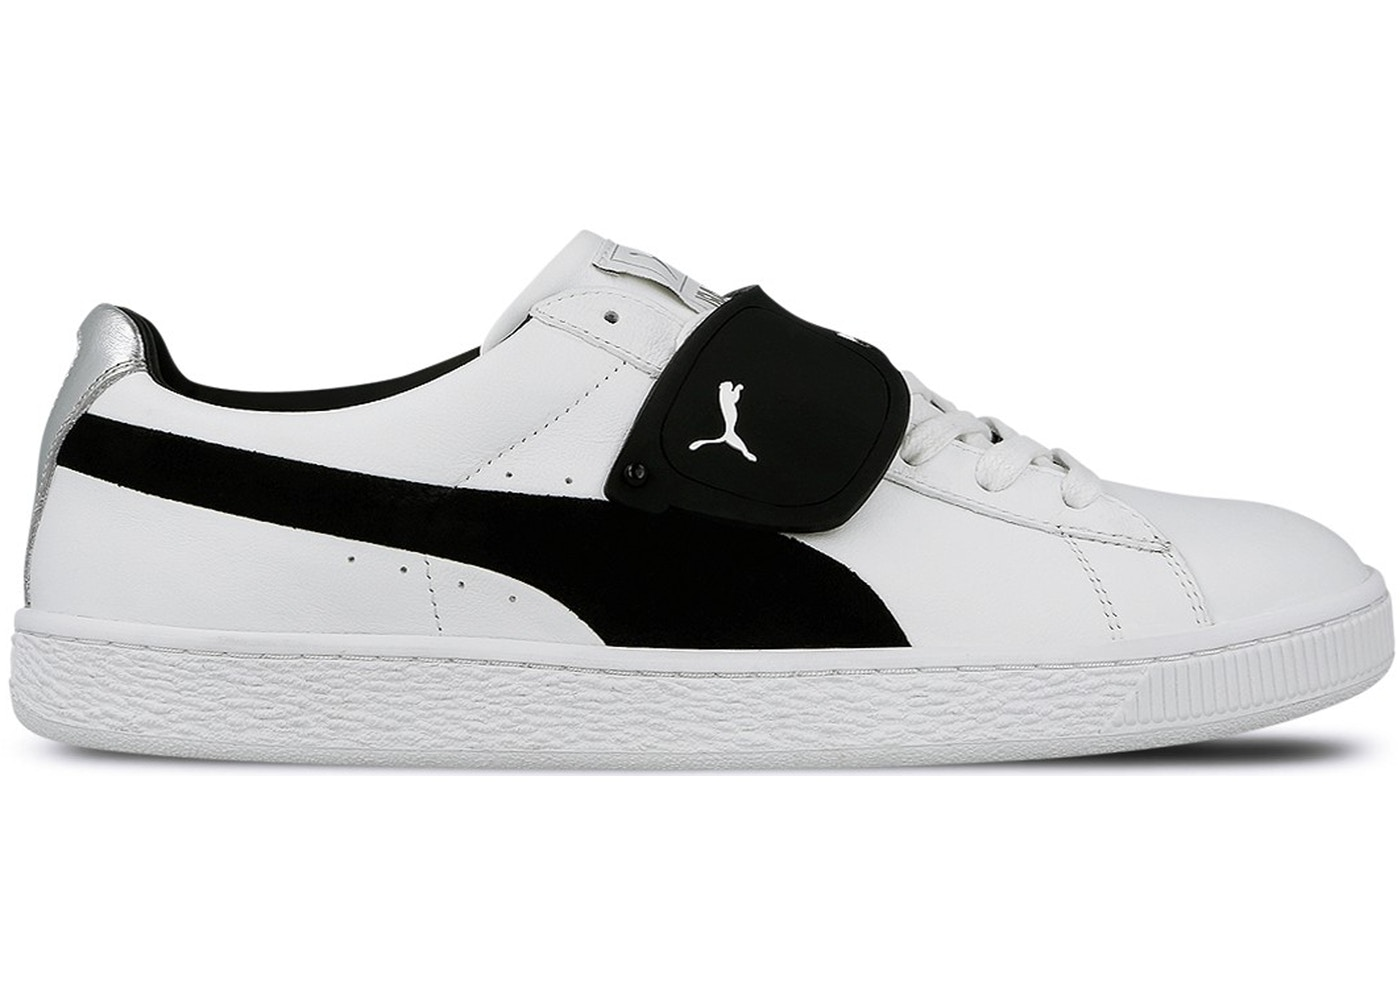 808bb603d6 Sell. or Ask. Size: 13. View All Bids. Puma Suede Classic Karl (Karl  Lagerfeld)